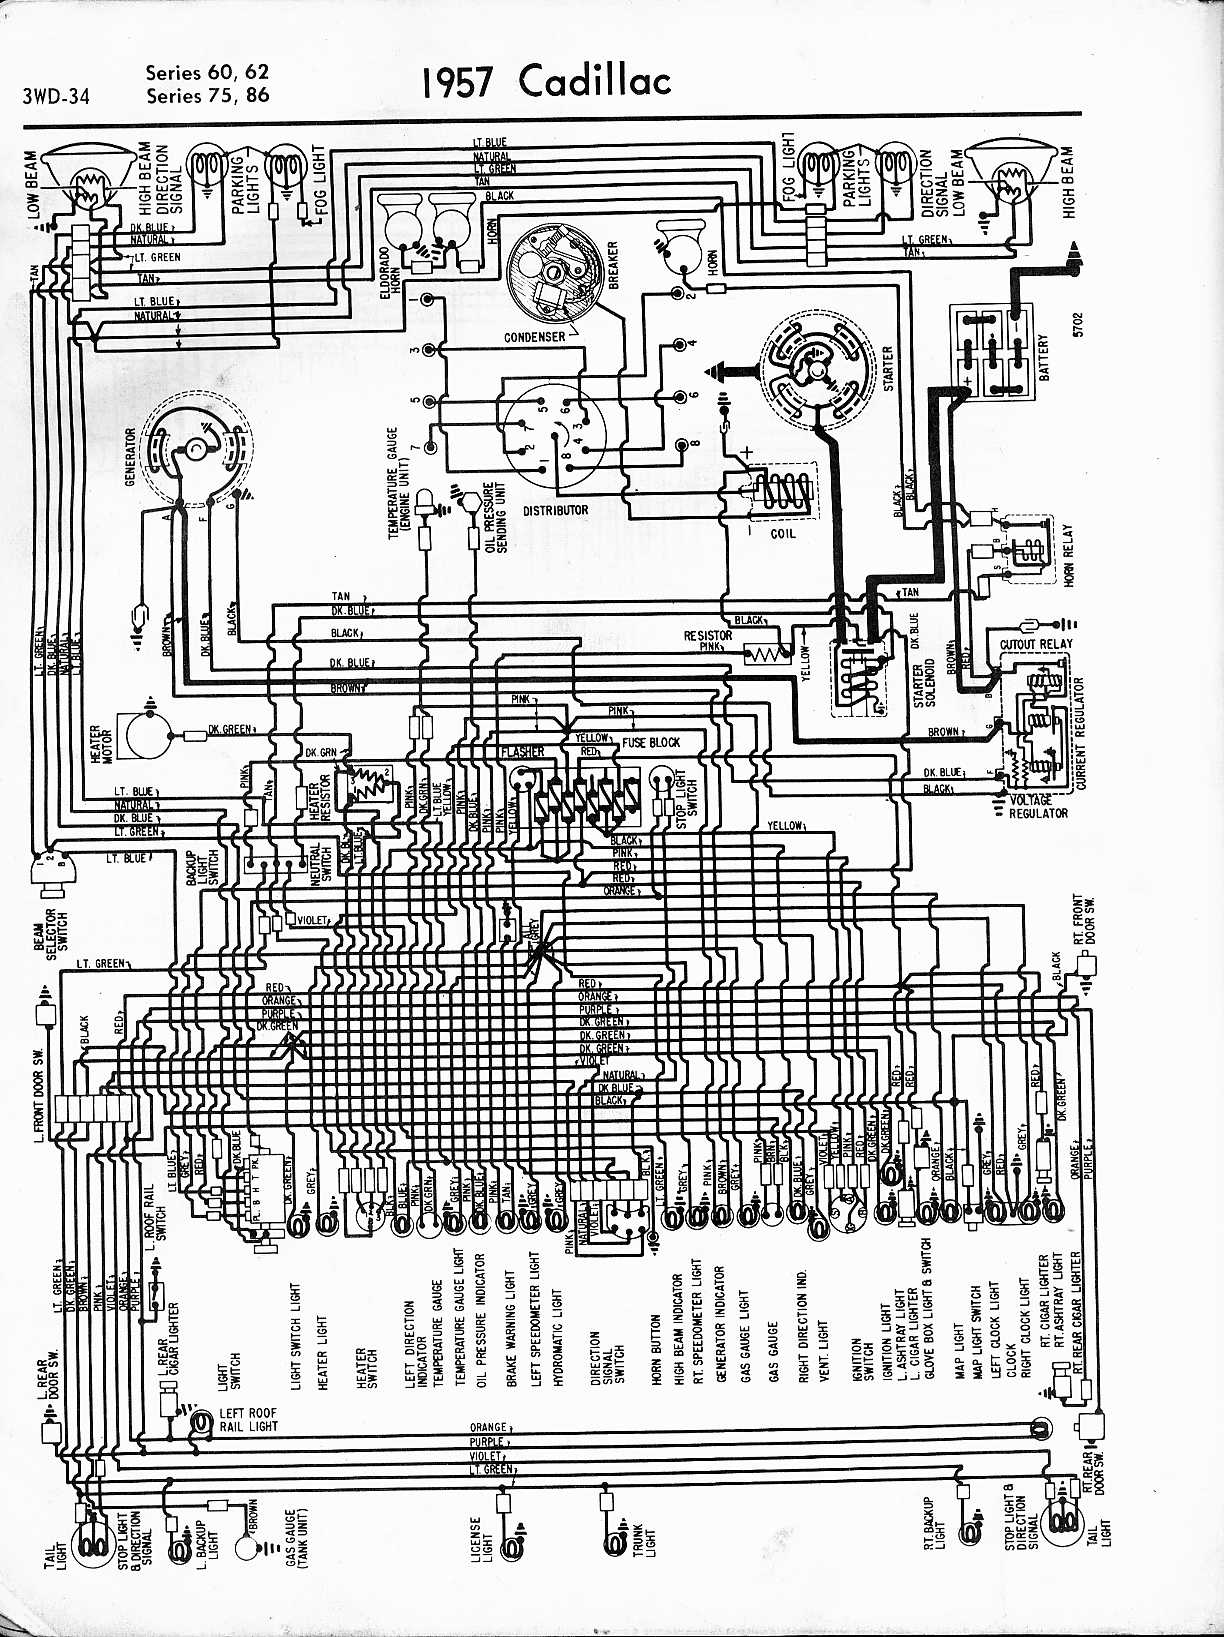 Cadillac Cts Wiring Schematics Books Of Diagram Fuse Box In 2008 1956 Schemes Rh Cabanaselgolfo Com Stereo